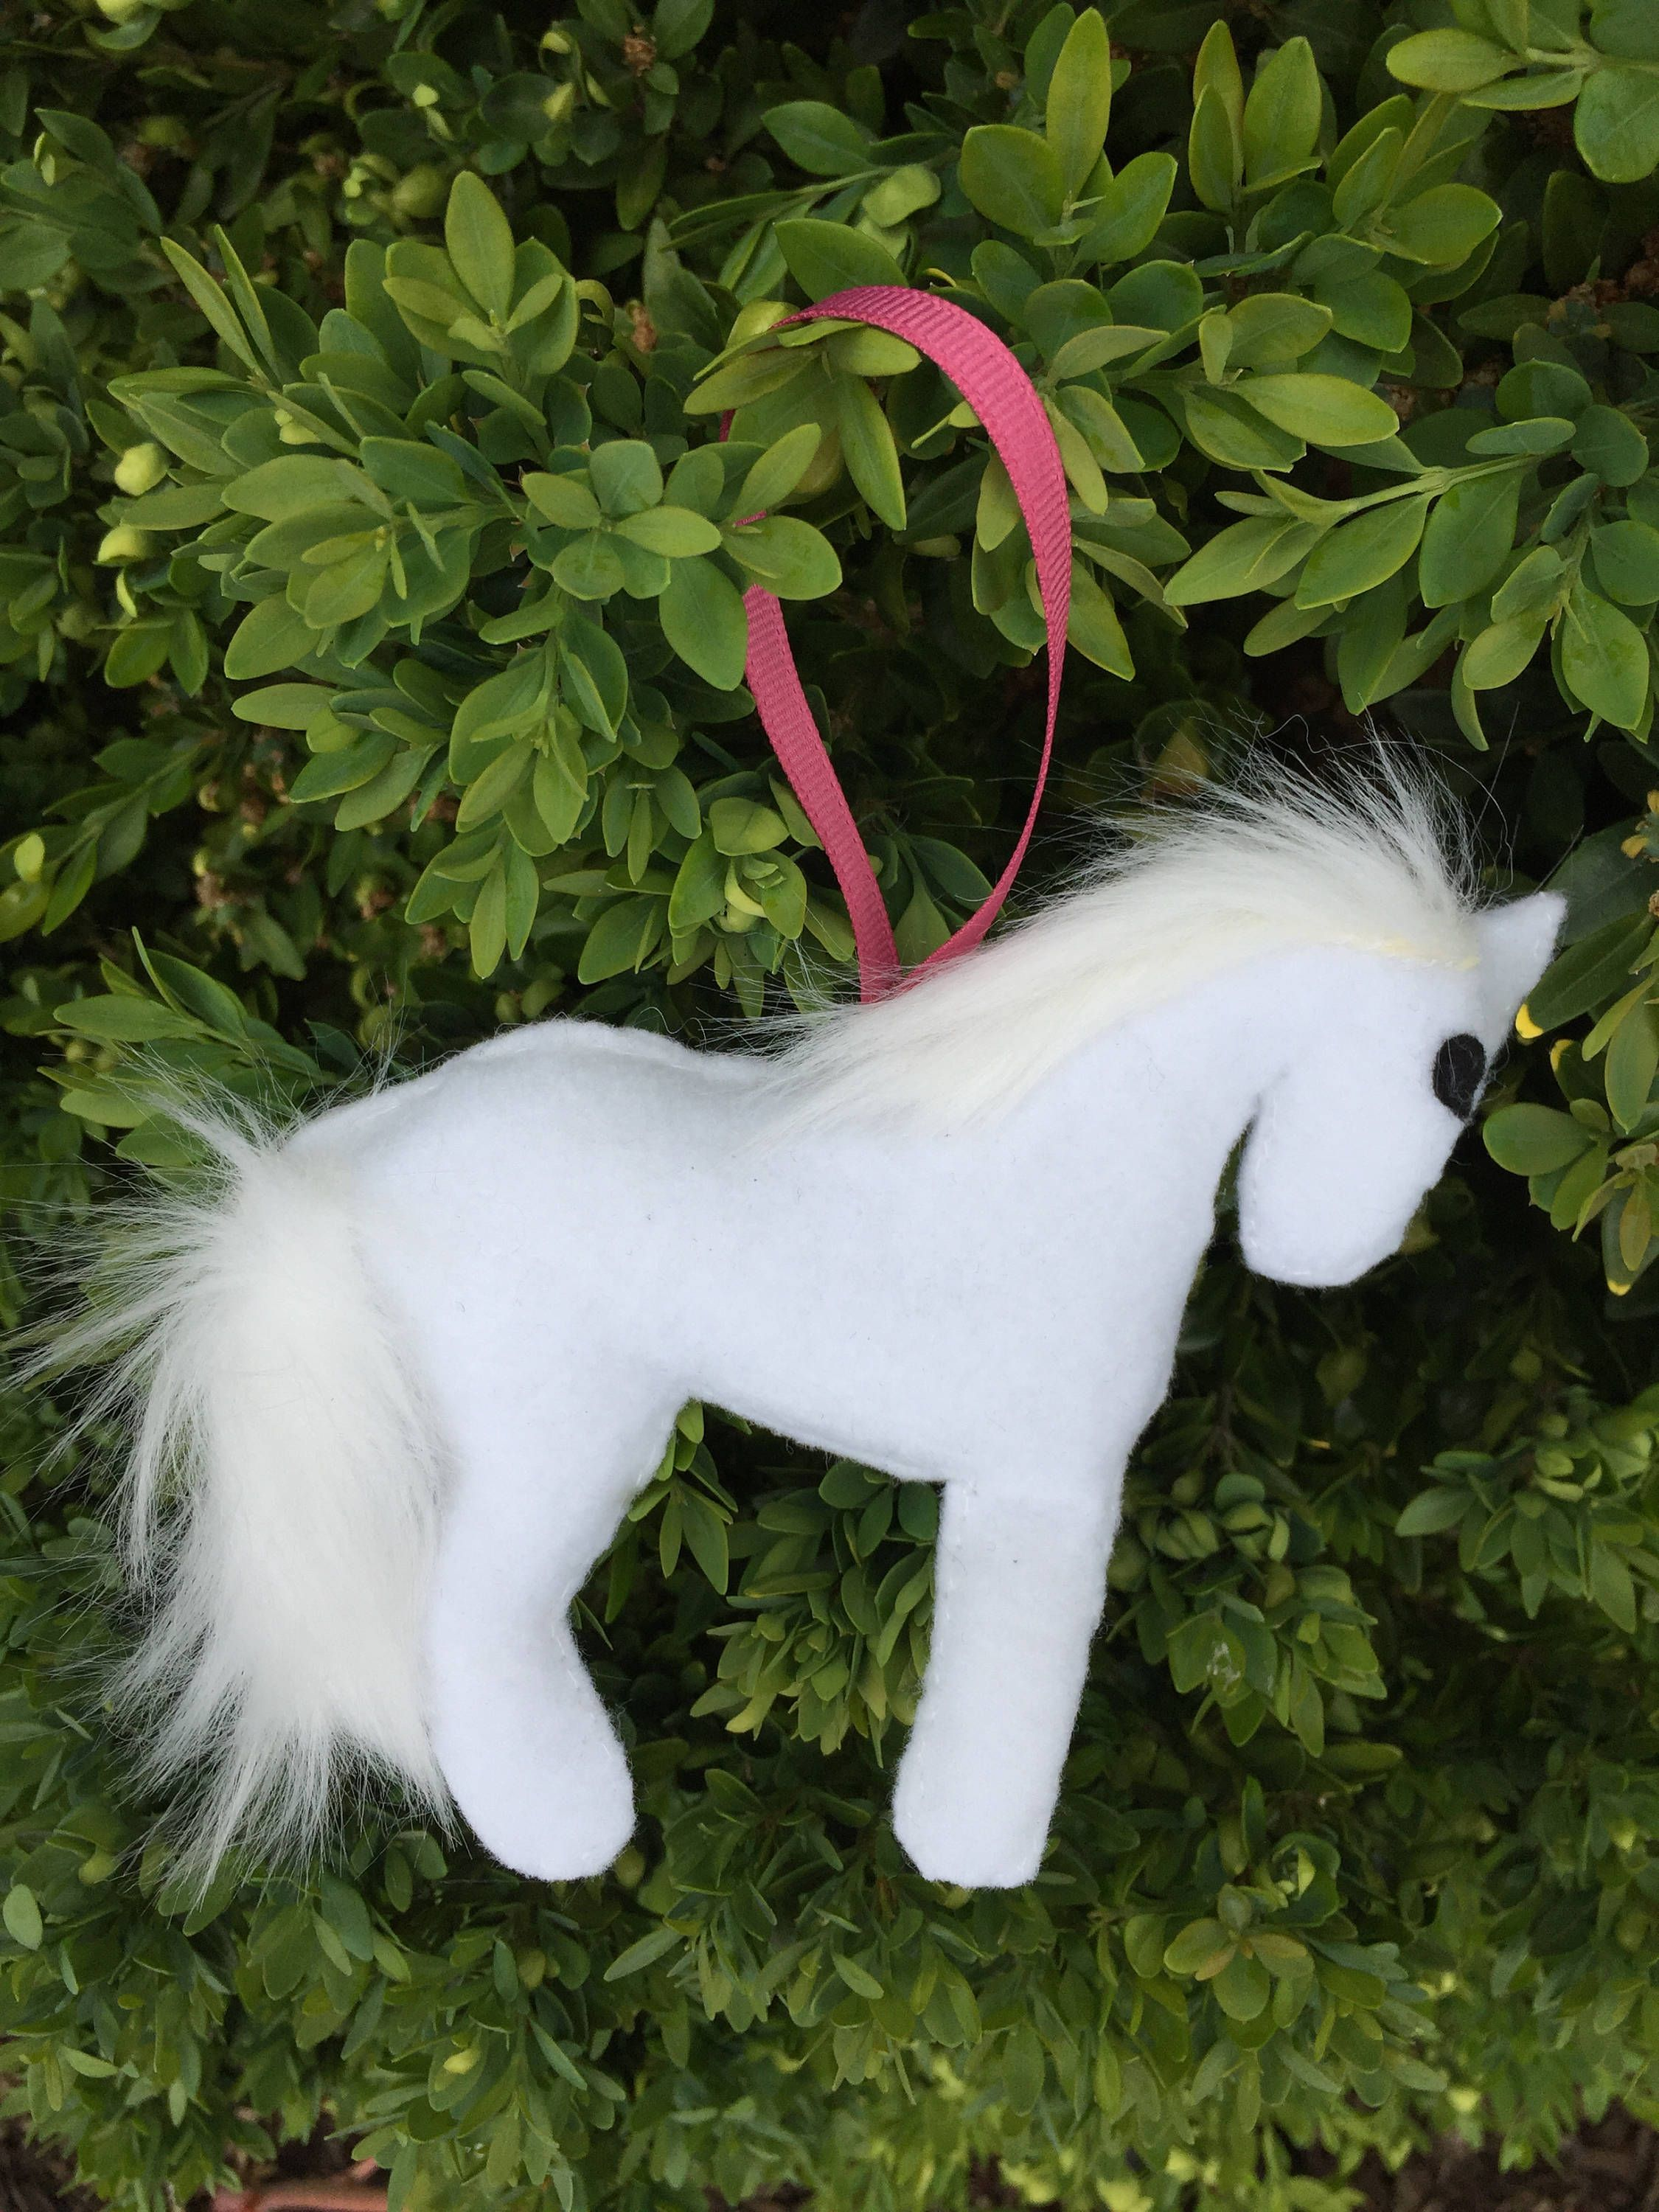 Pet memorial christmas ornaments - Felt Horse Ornament White Horse Christmas Ornament White Horse With Faux White Mane And Tail Pet Memorial Horse Lovers Gift